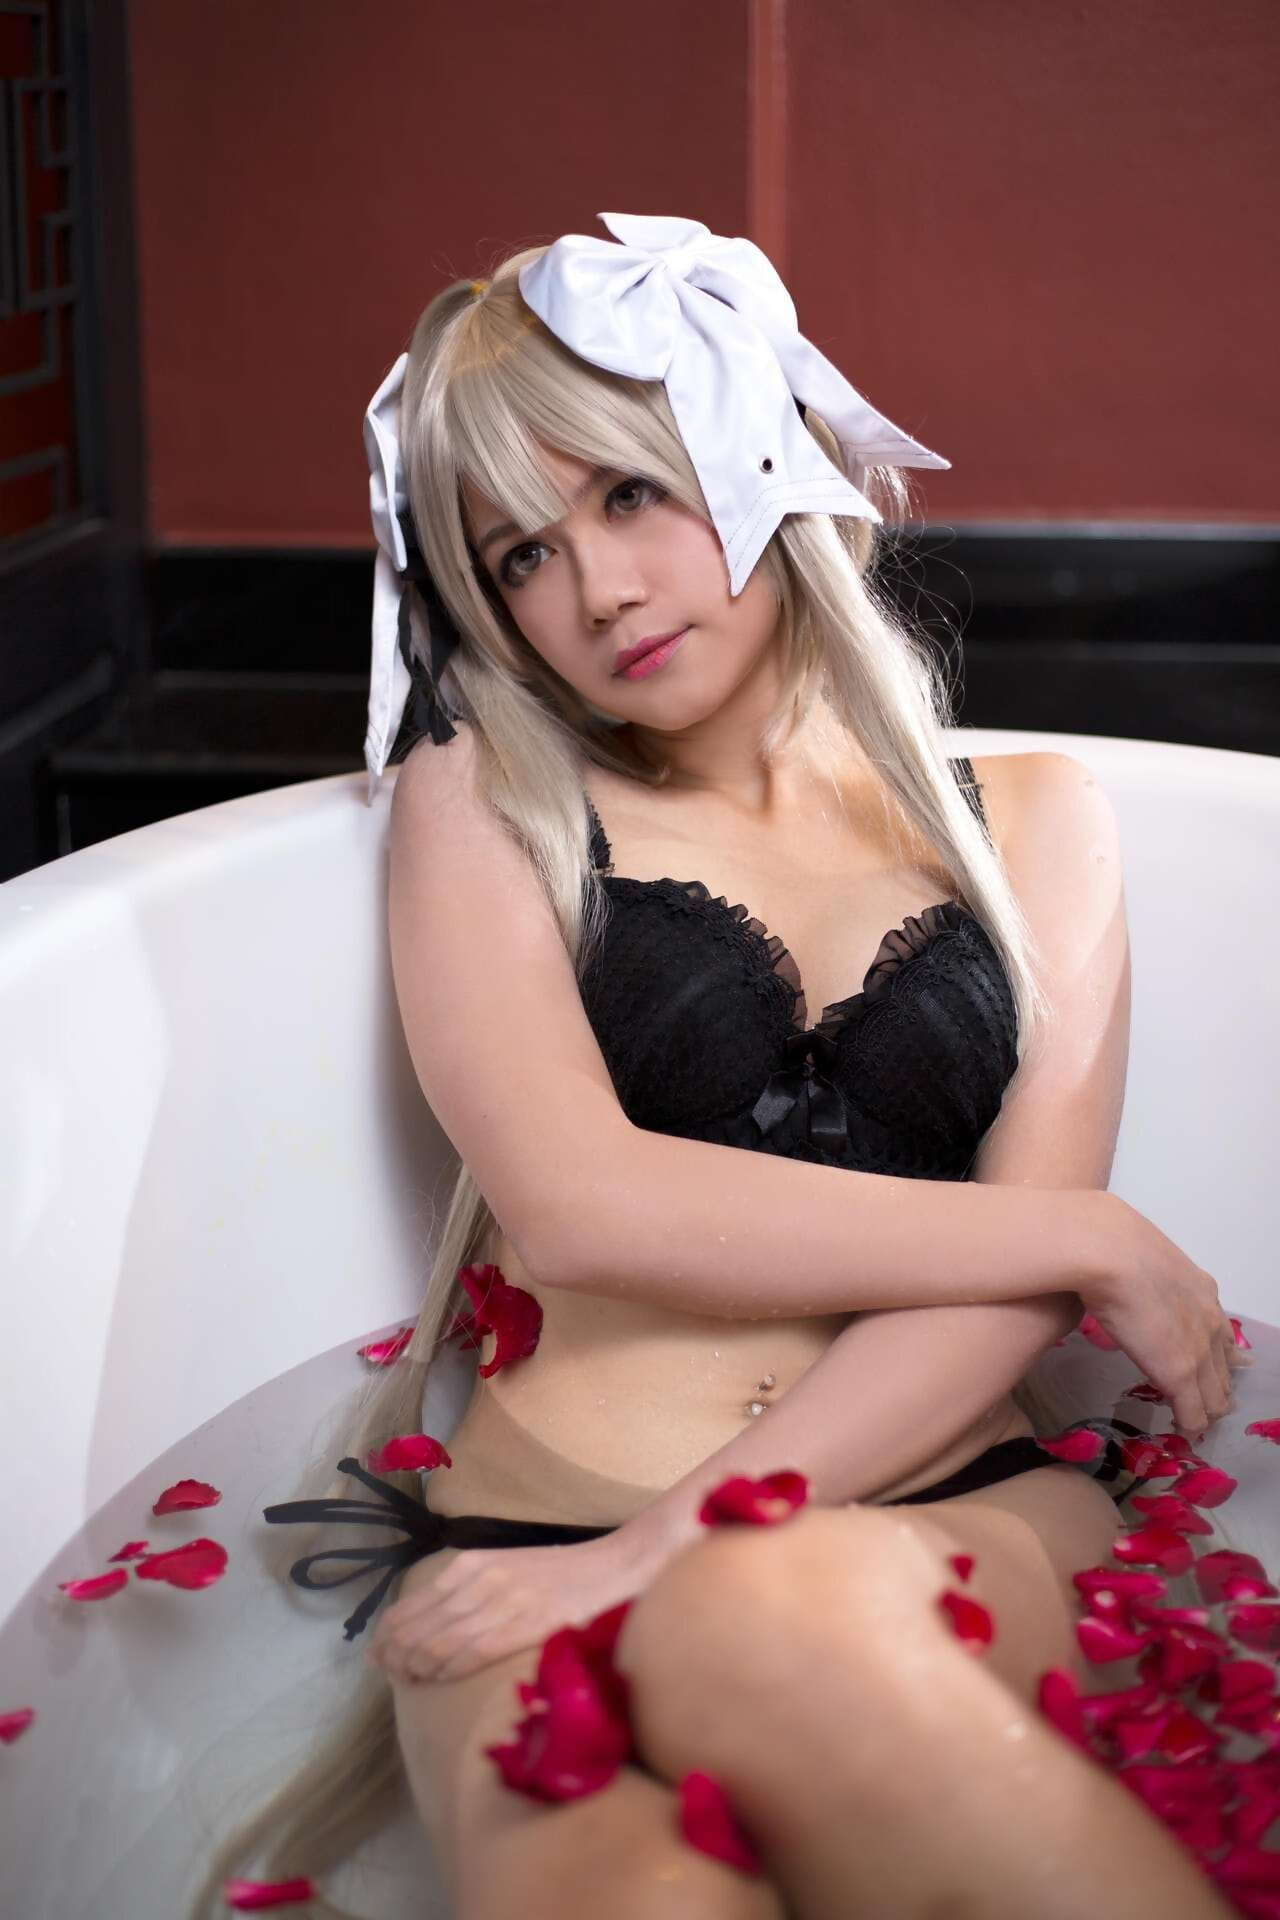 Aine cosplayer similar absent of Patreon guaranty - fastening 2